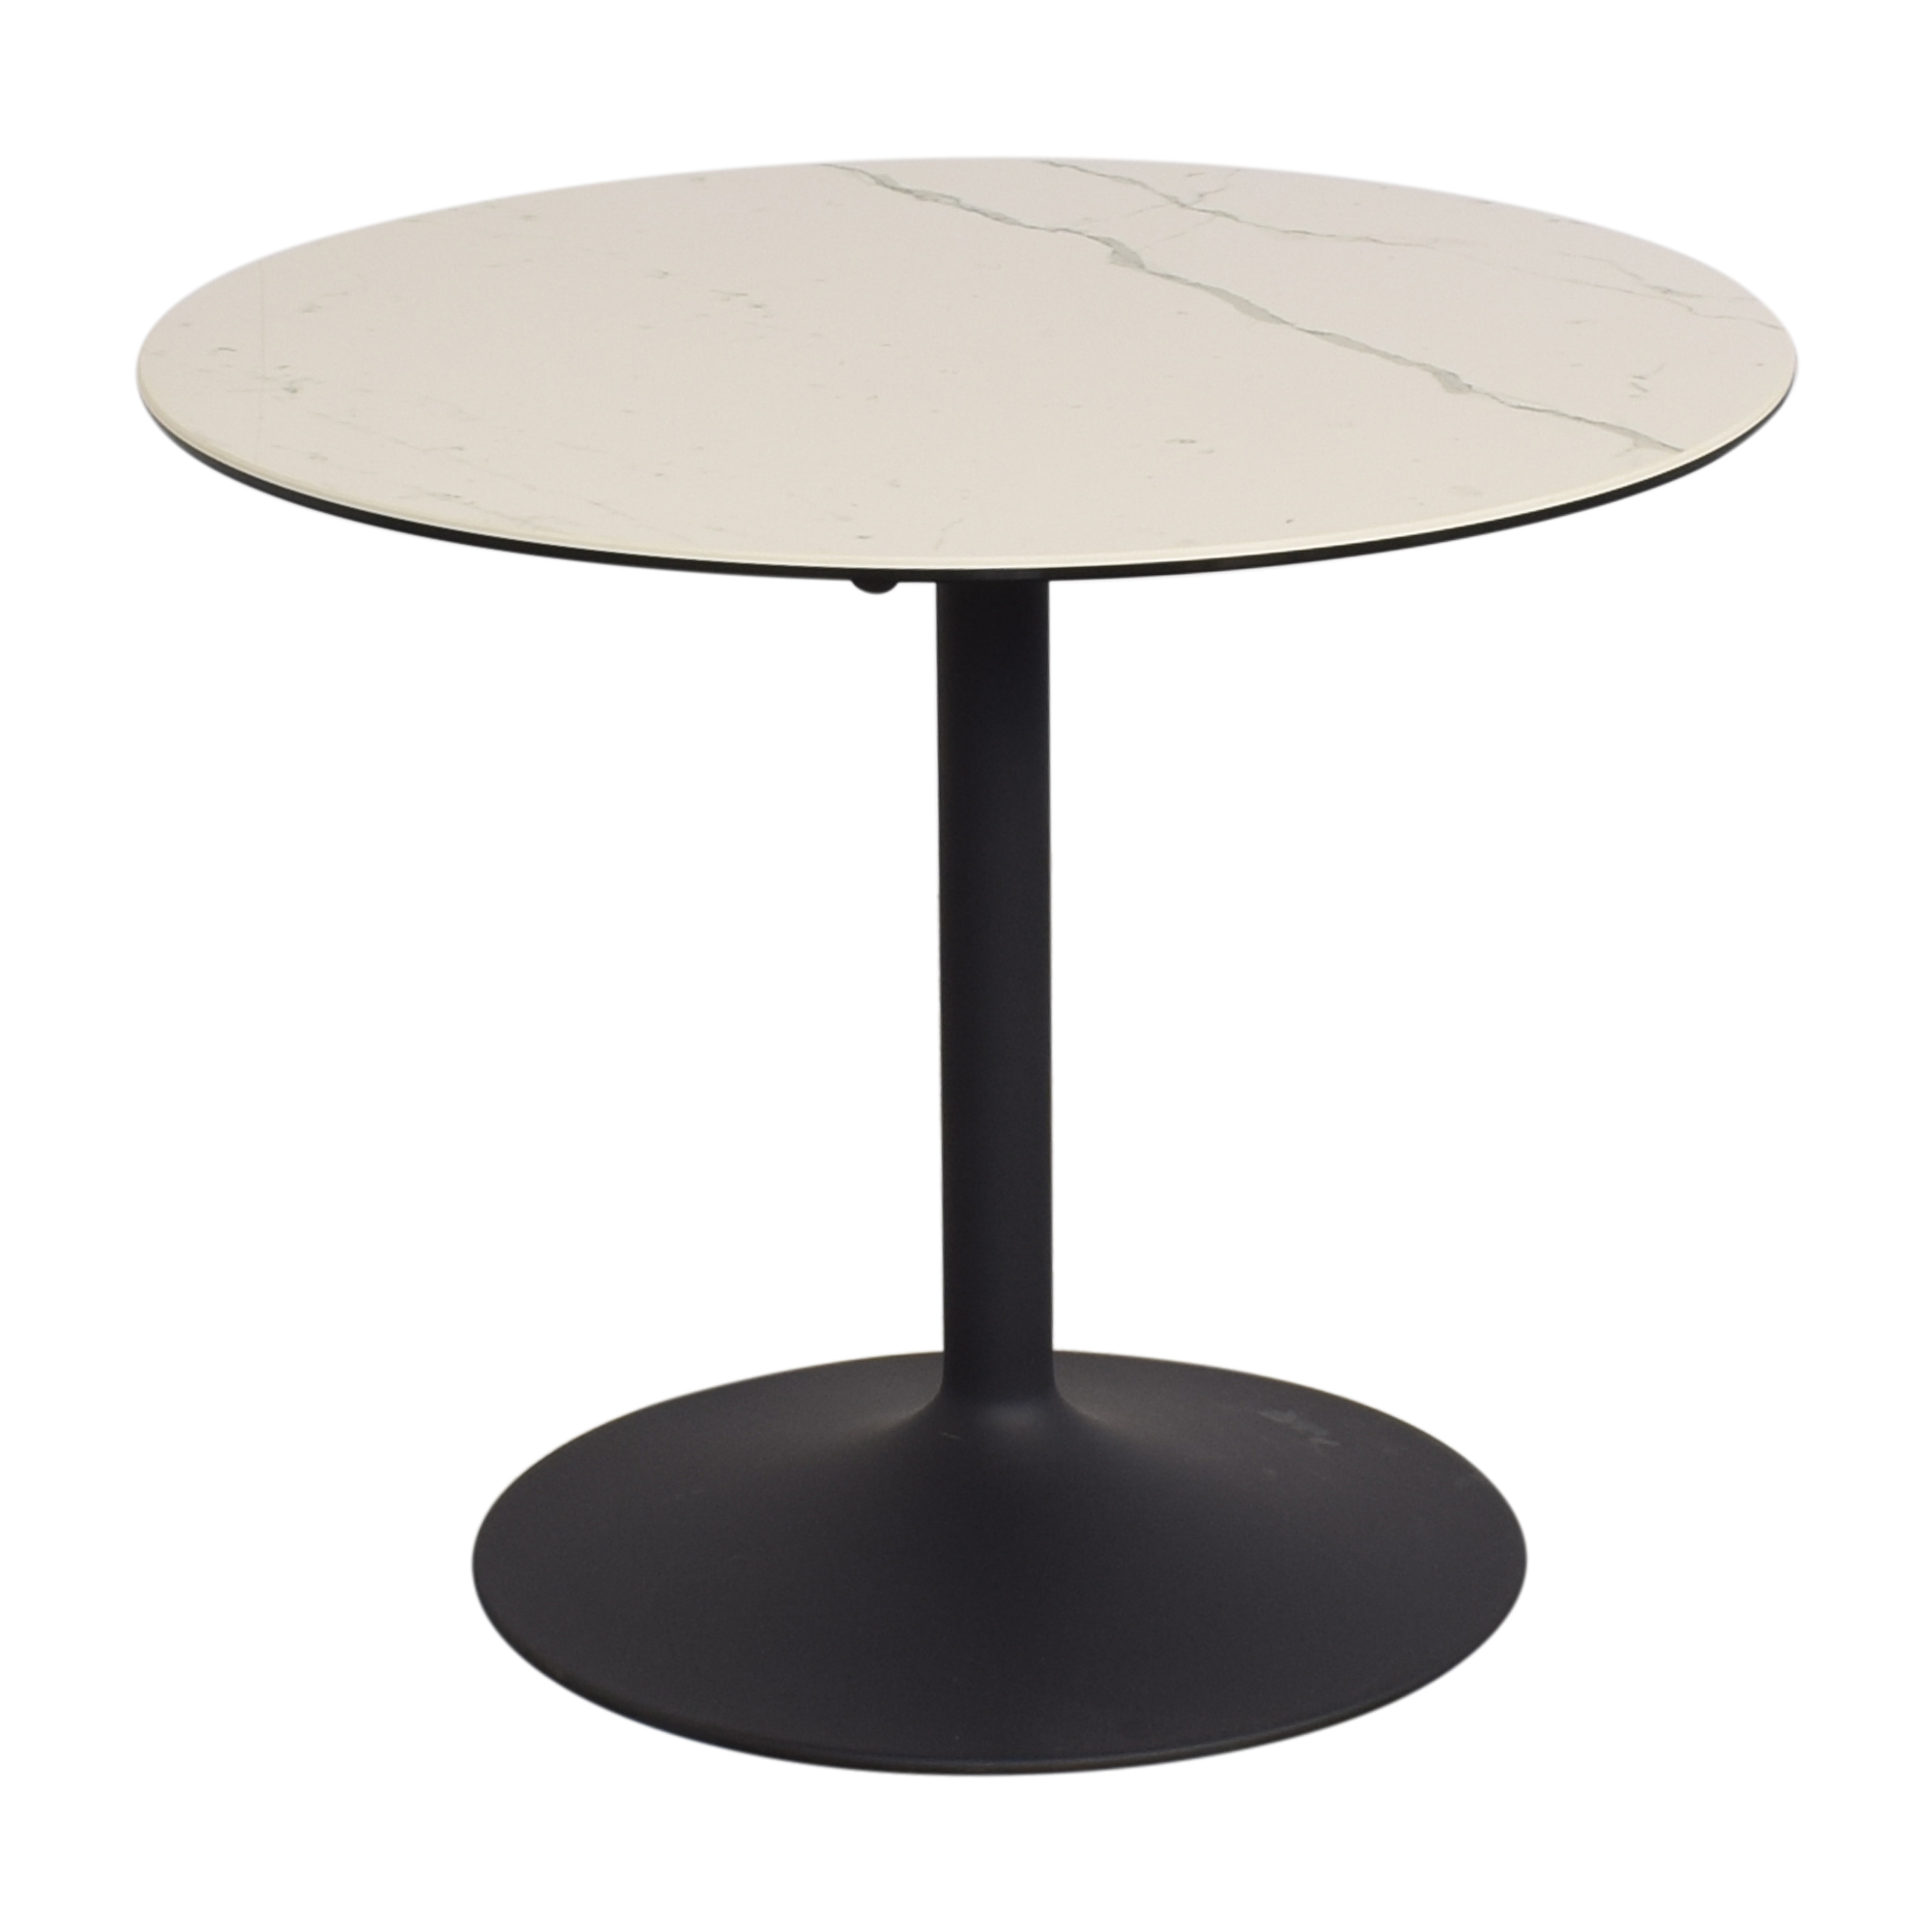 Room & Board Room & Board Aria Round Table for sale